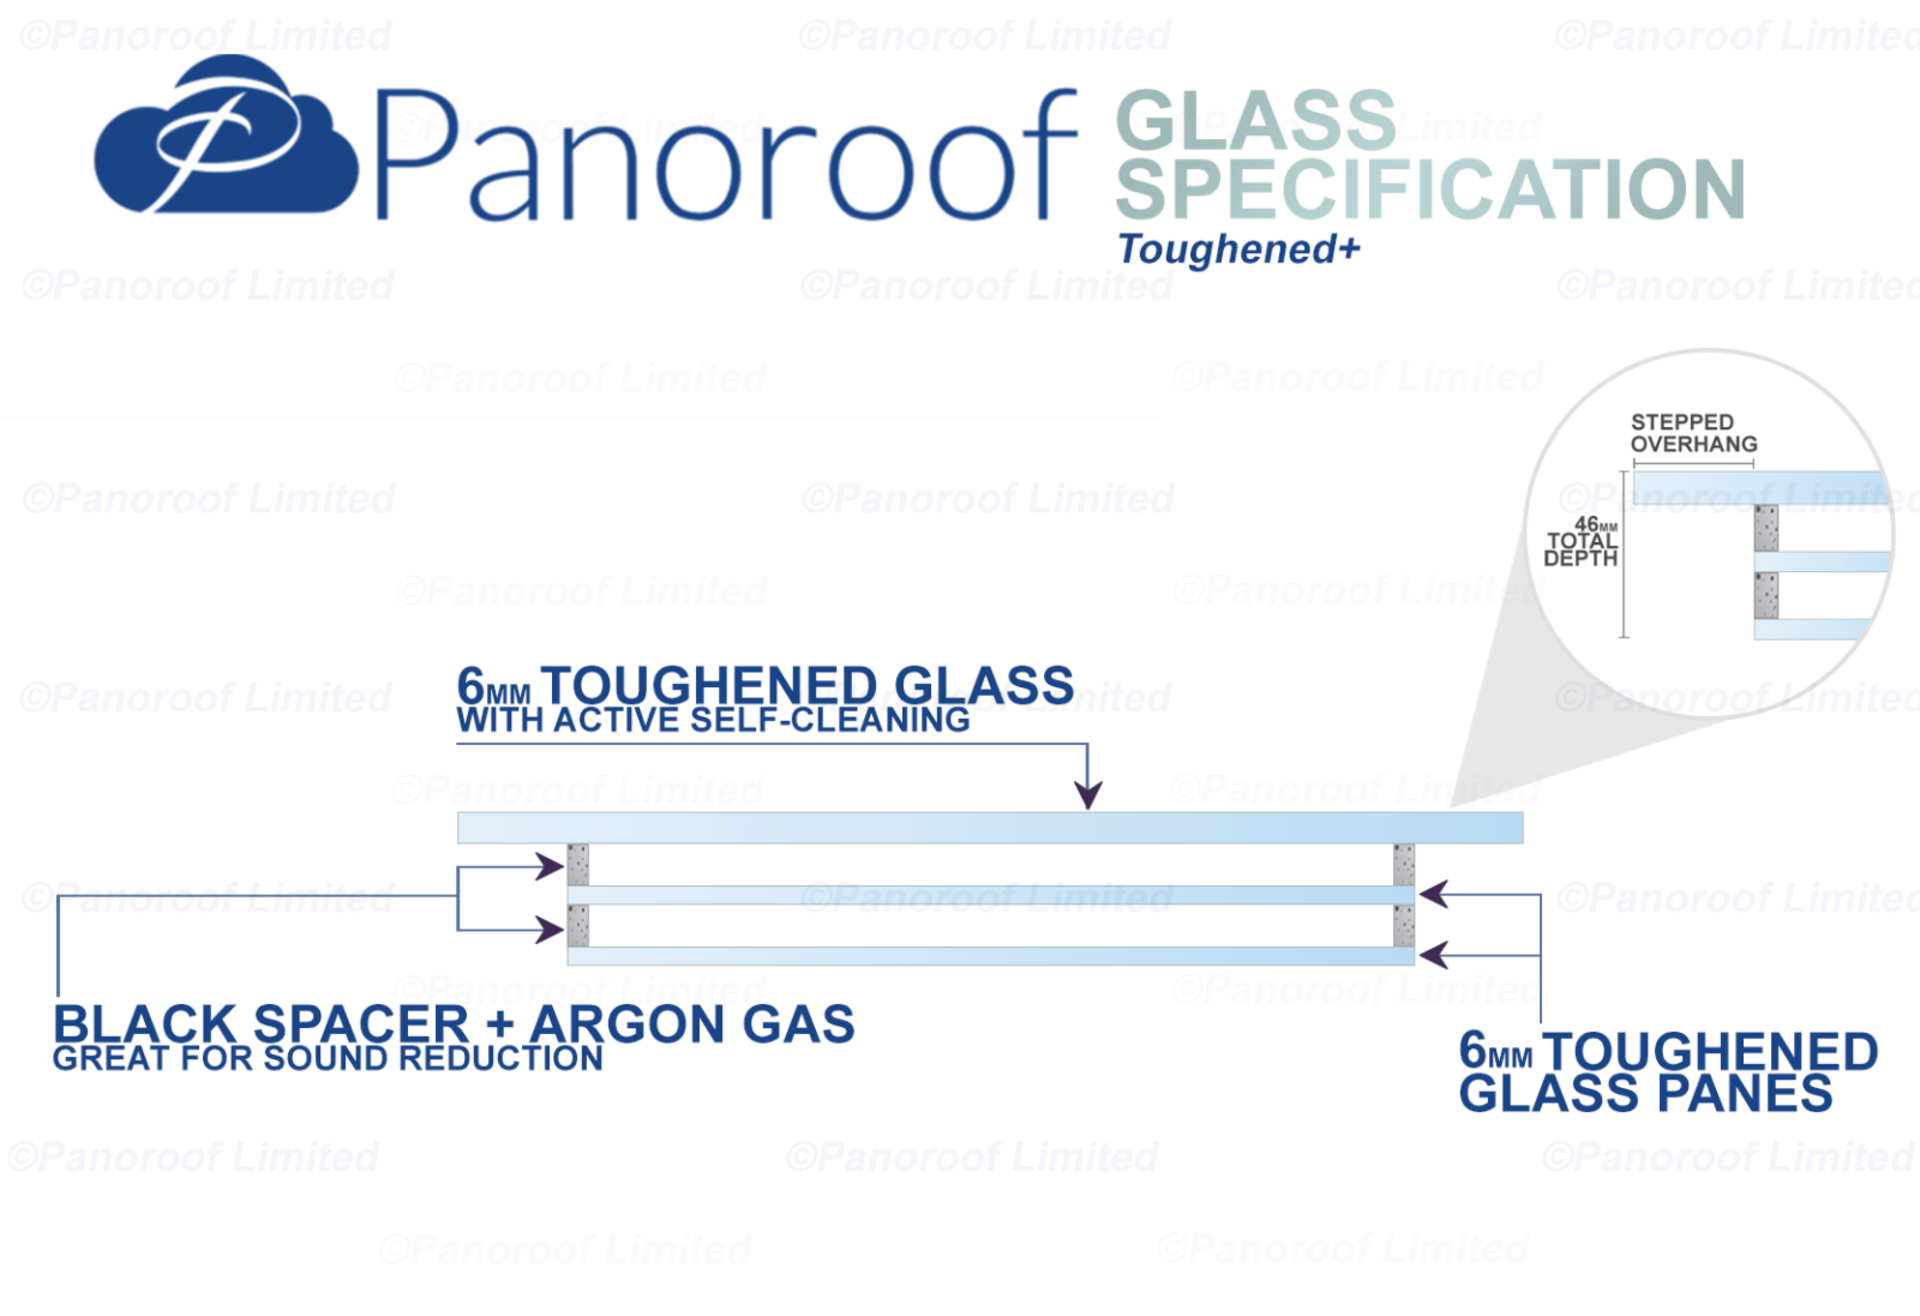 Panoroof 2000x2000mm (inside Size Visable glass area) Seamless Glass Skylight Flat Roof Rooflight - Image 5 of 6